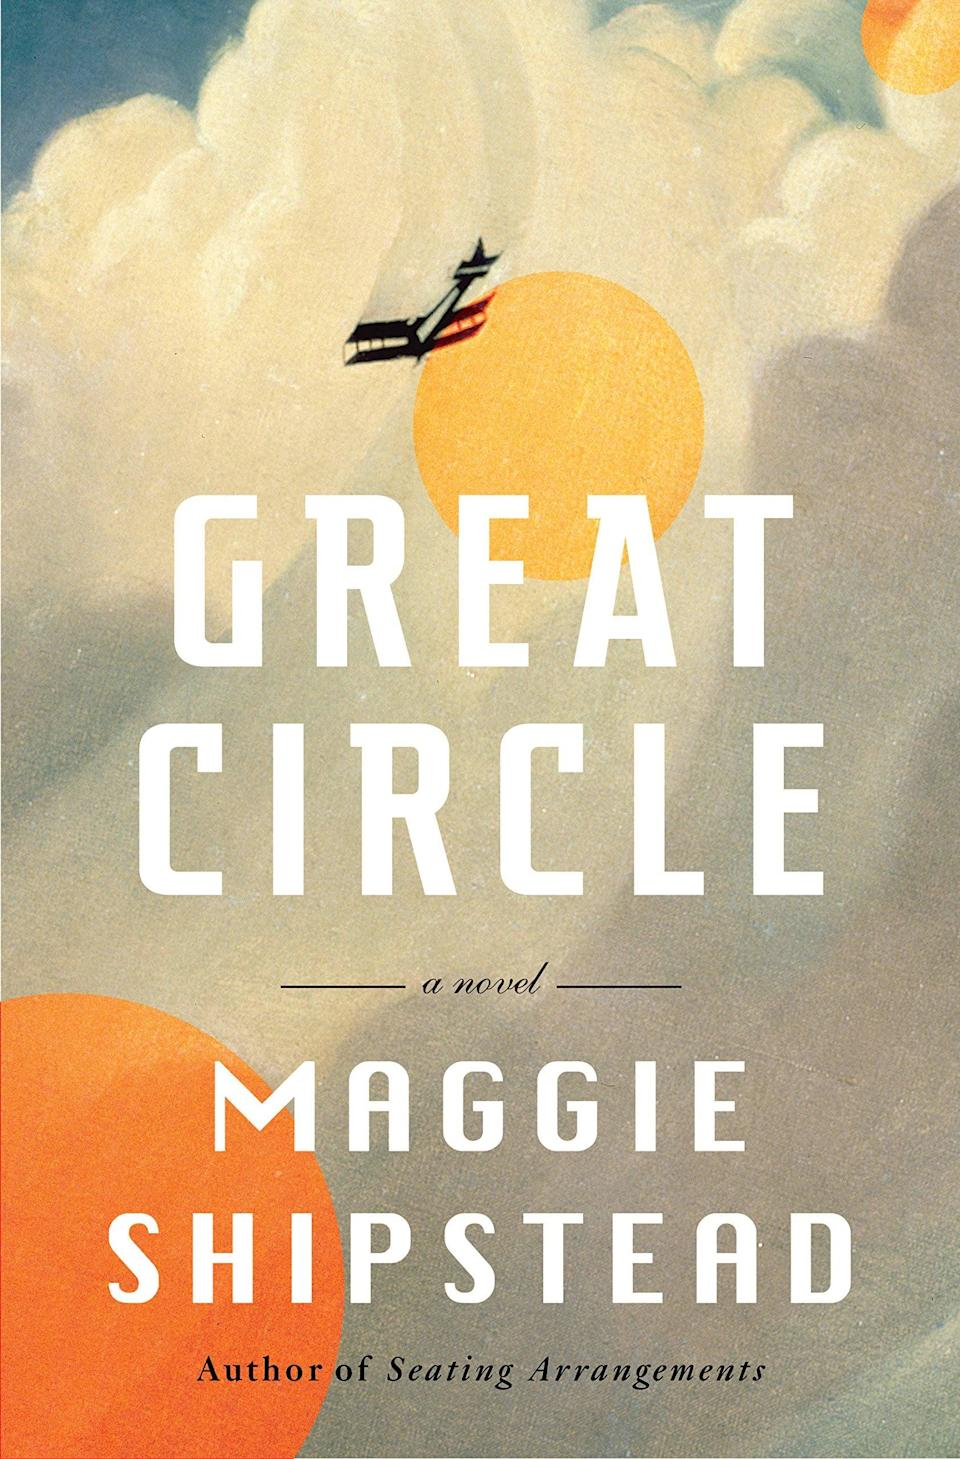 <p><span><strong>Great Circle</strong></span> by Maggie Shipstead is a decades-spanning tale of a trailblazing woman pilot and the modern-day actress who is preparing to play her in a Hollywood blockbuster. Marian devotes her entire life to becoming the best possible pilot she can be, but her attempt to circumnavigate the North and South Poles ends in tragedy. A century later, Hadley Baxter immerses herself in Marian's story in preparation for the role of a lifetime only to discover she has more in common with Marian than she could have ever imagined. </p> <p><em>Out May 4</em></p>